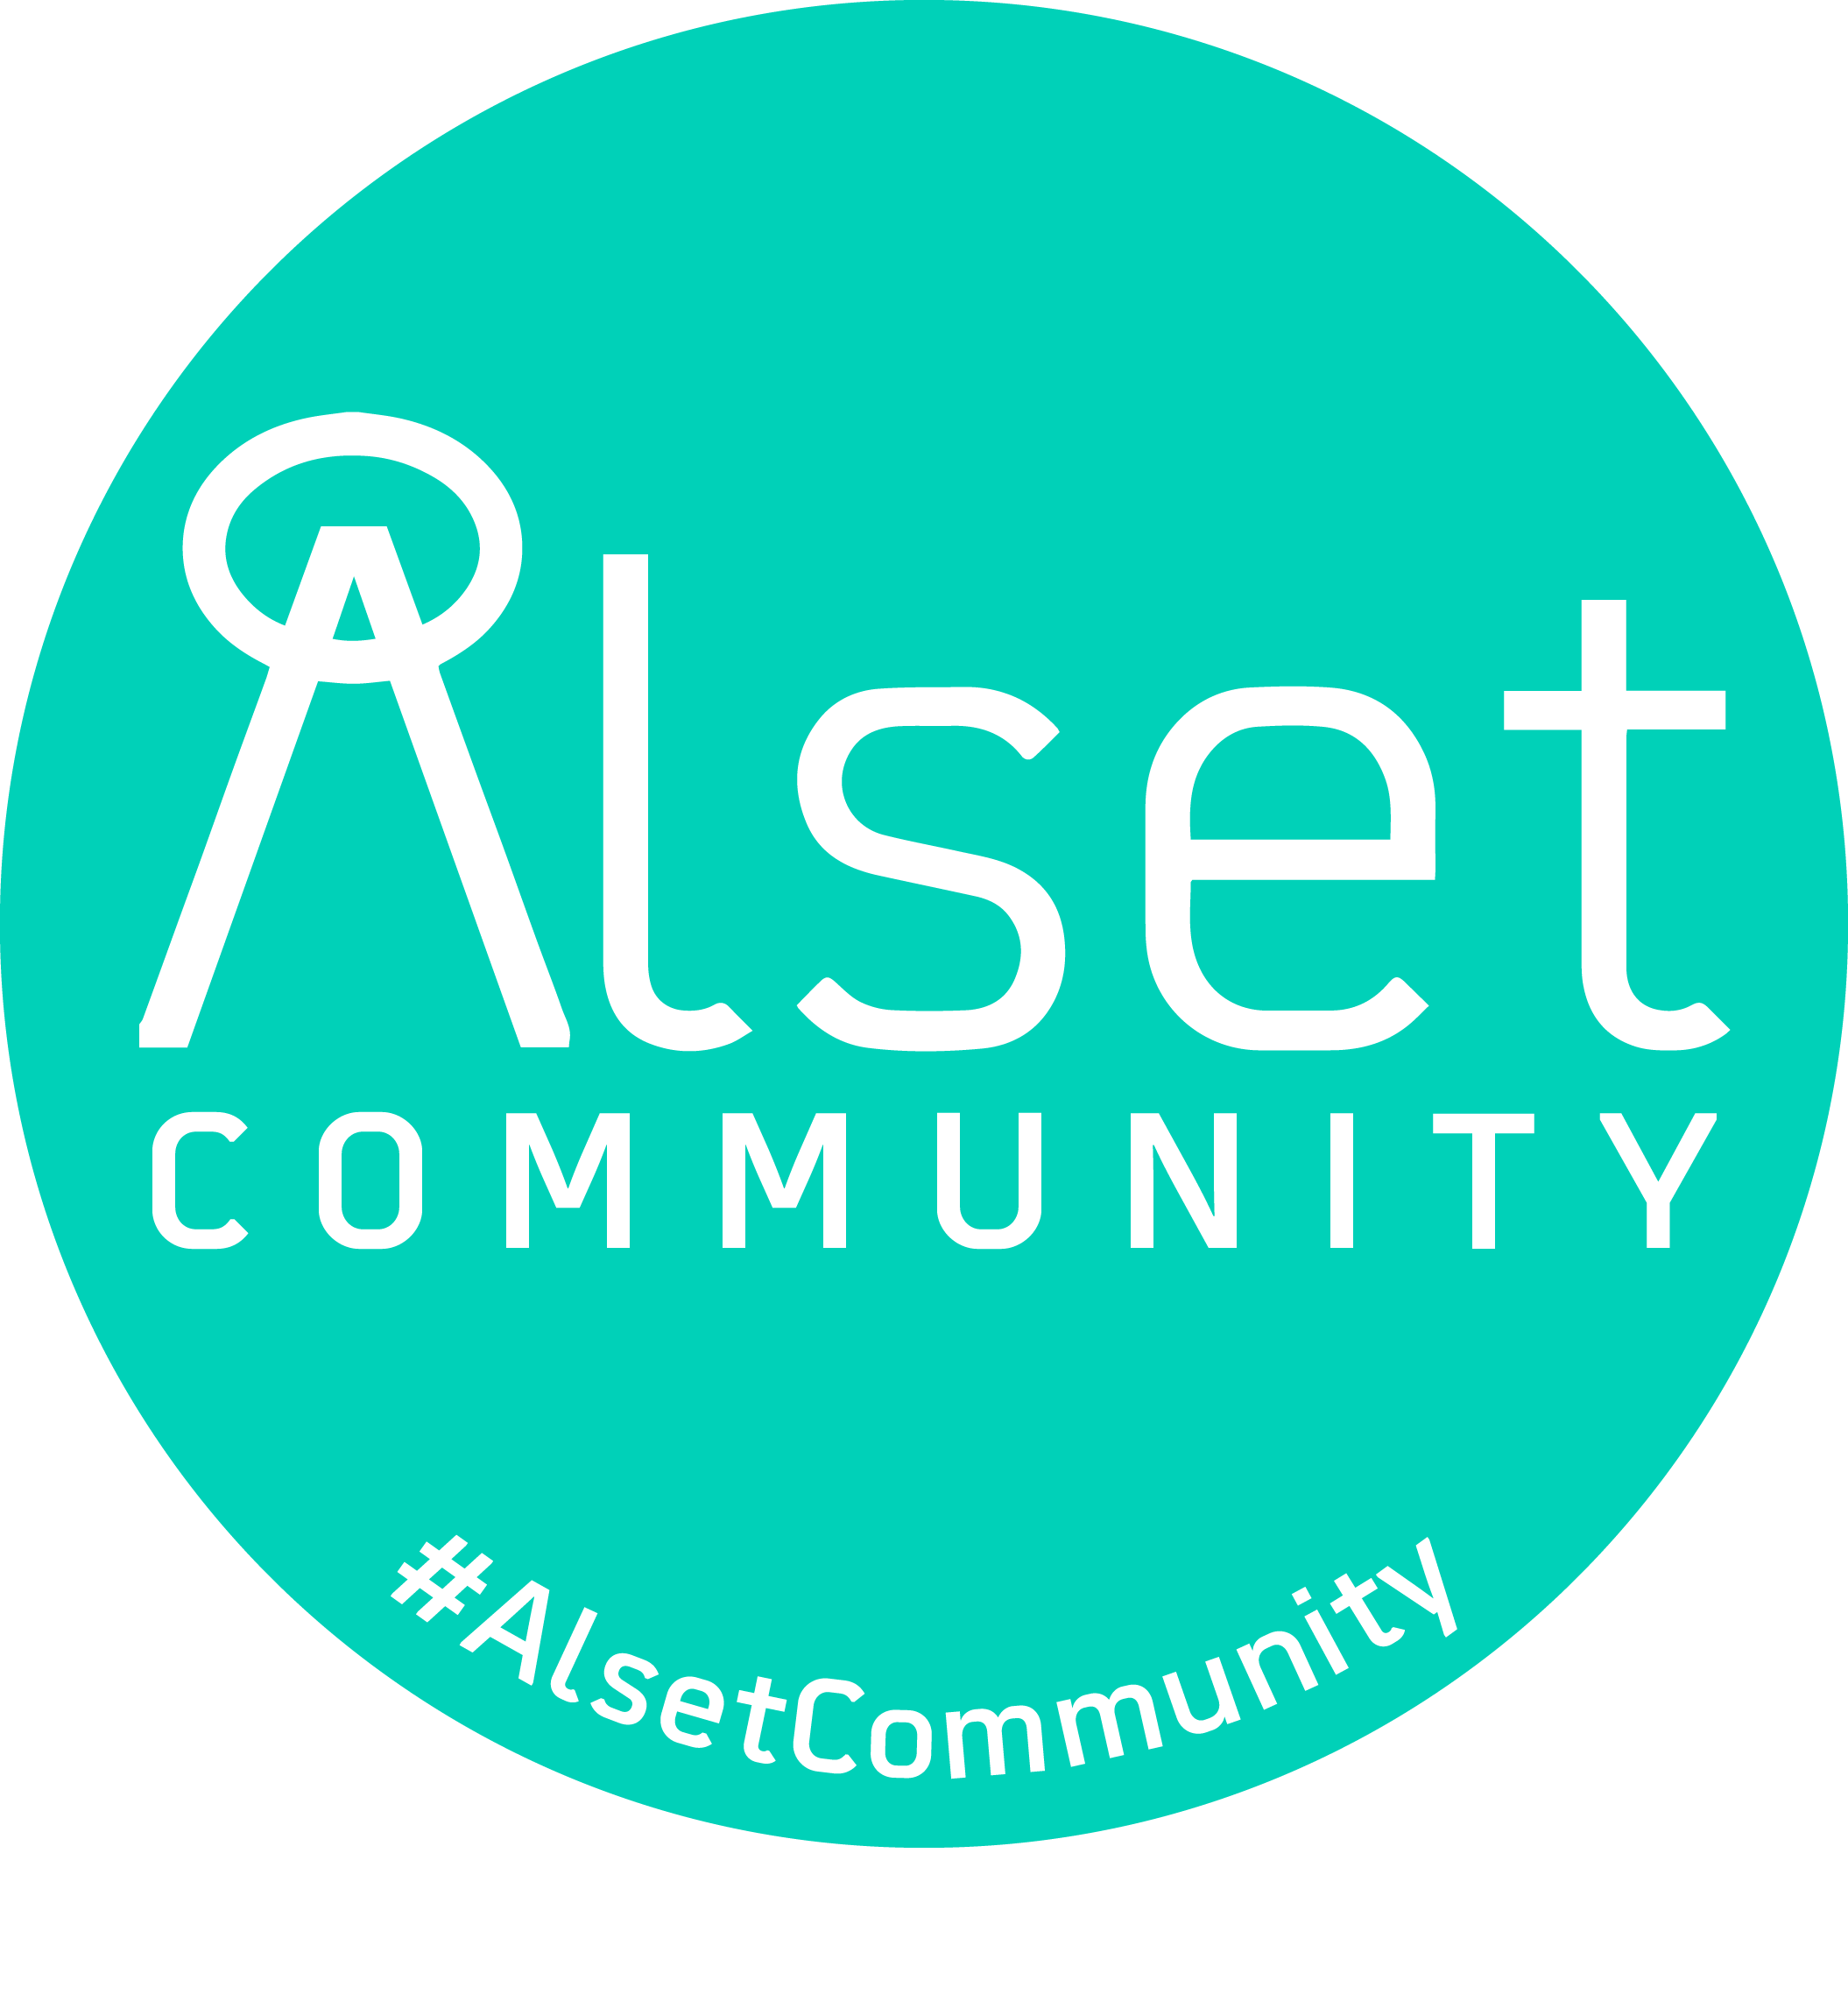 Robert Lo founder of Alset